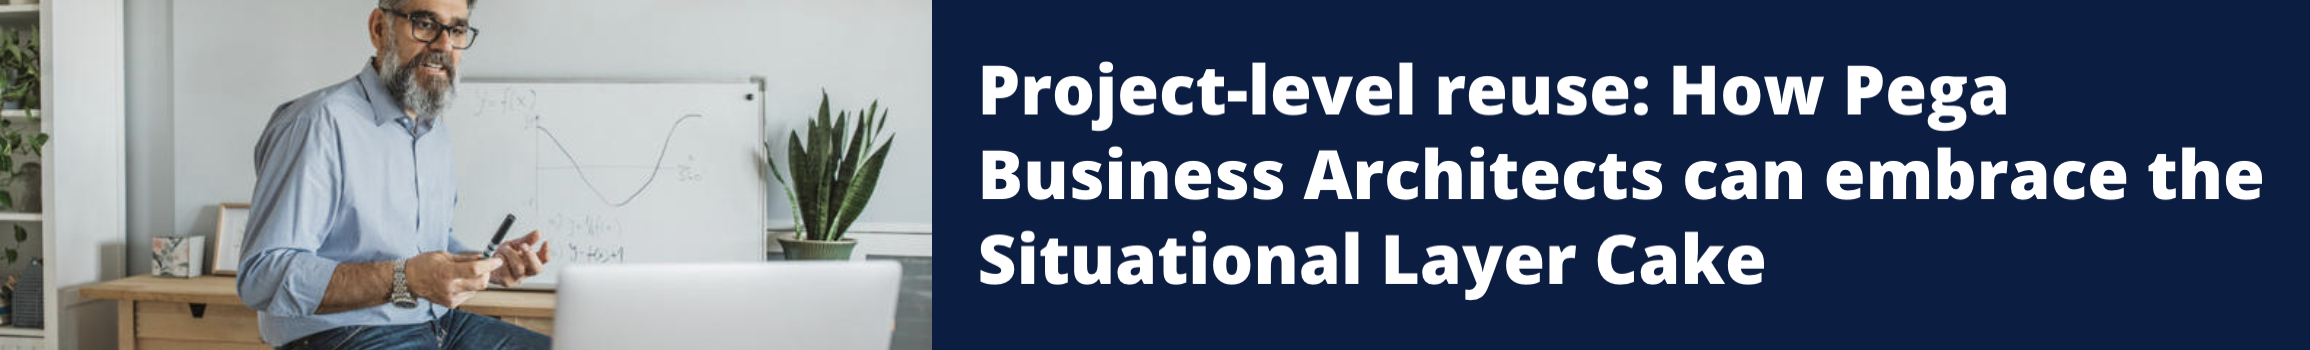 Project-level reuse: How Pega Business Architects can embrace the Situational Layer Cake to become faster and lighter